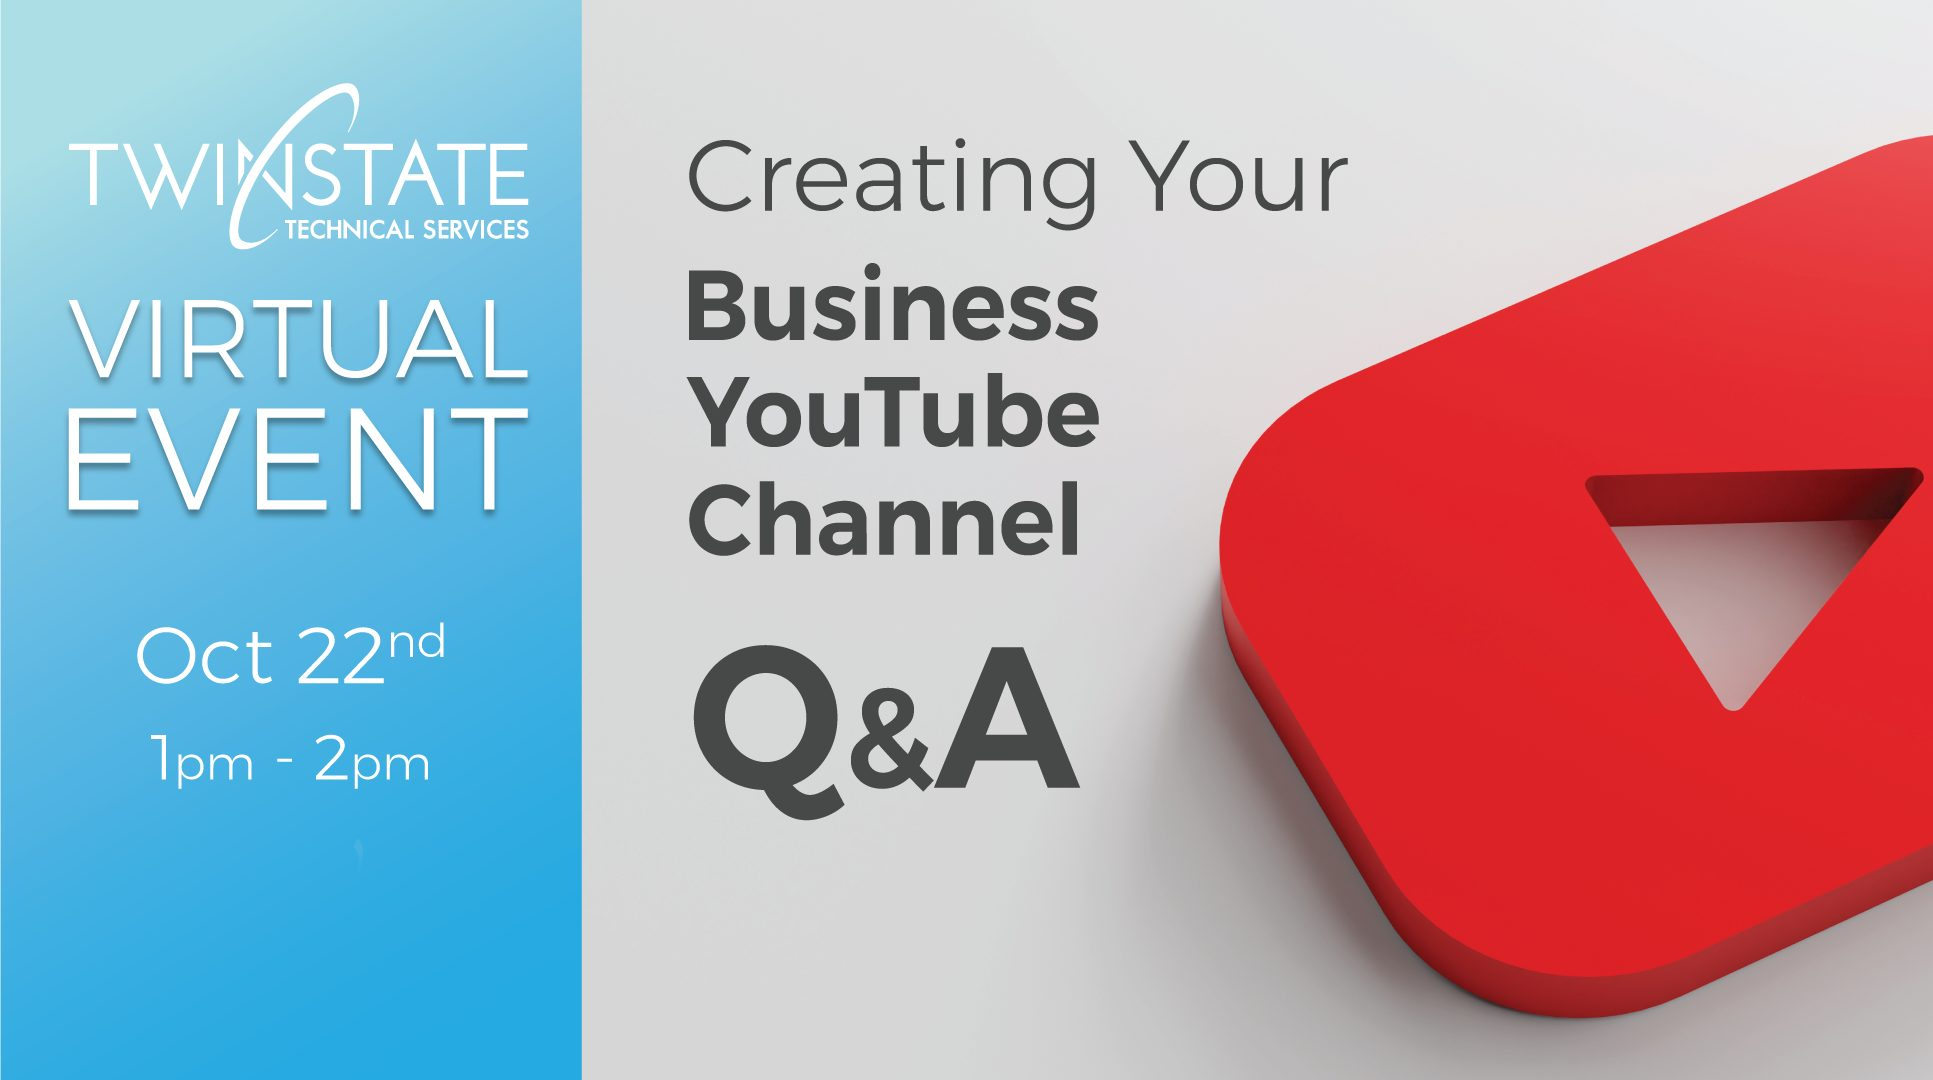 Create your business YouTube channel event